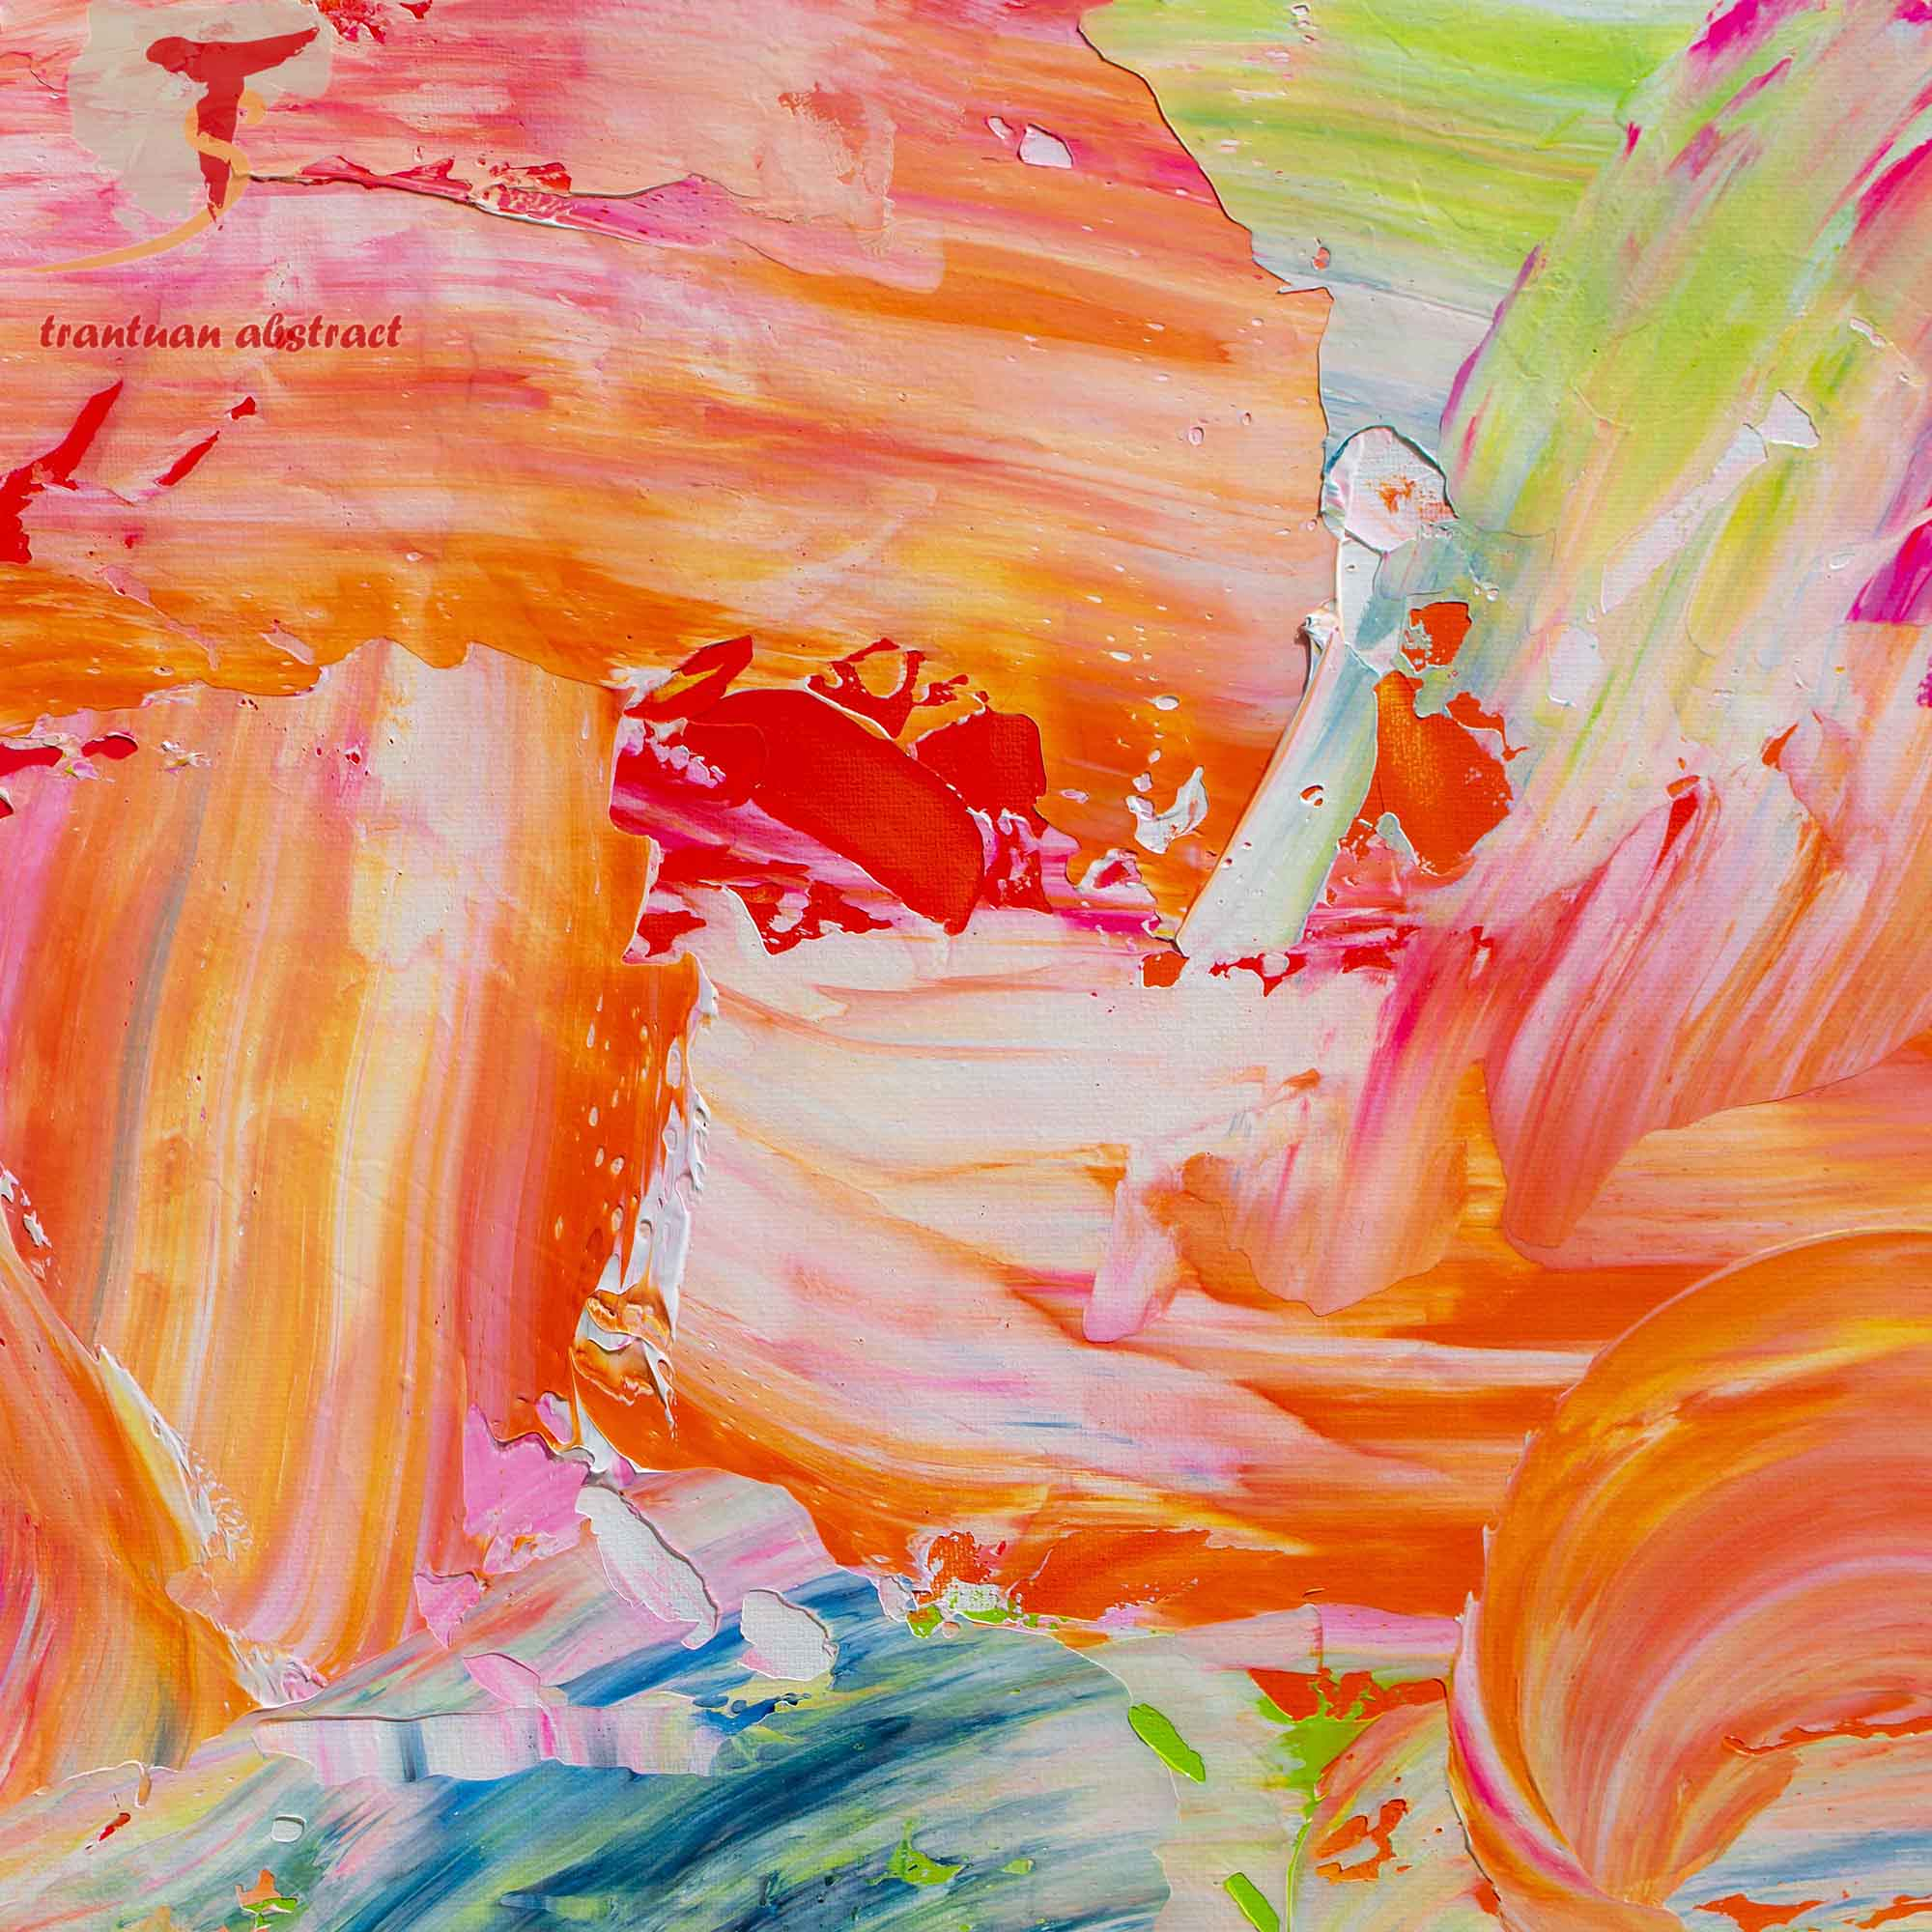 Tran Tuan Abstract Transparent Cloud 135 x 80 x 5 cm Acrylic on Canvas Painting Detail s (2)